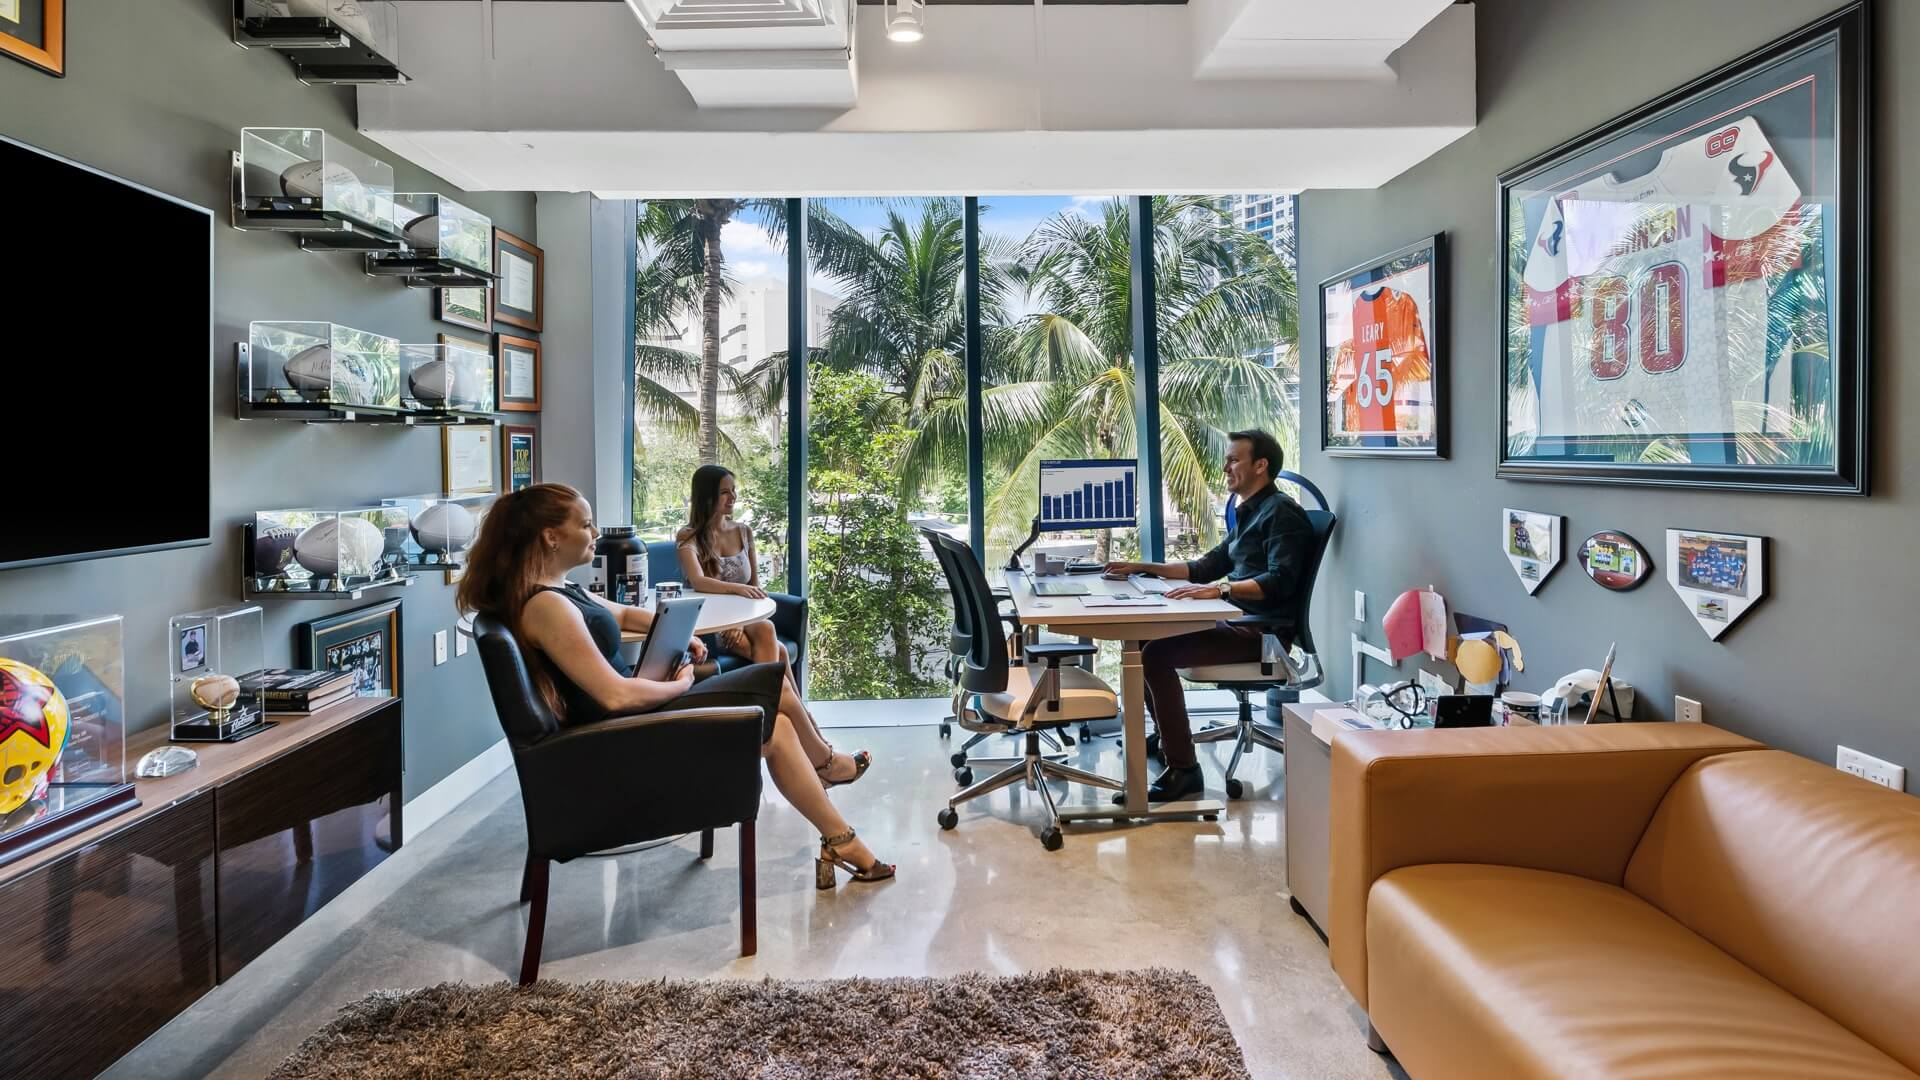 ... Coworking, Shared Office Space In Fort Lauderdale ...